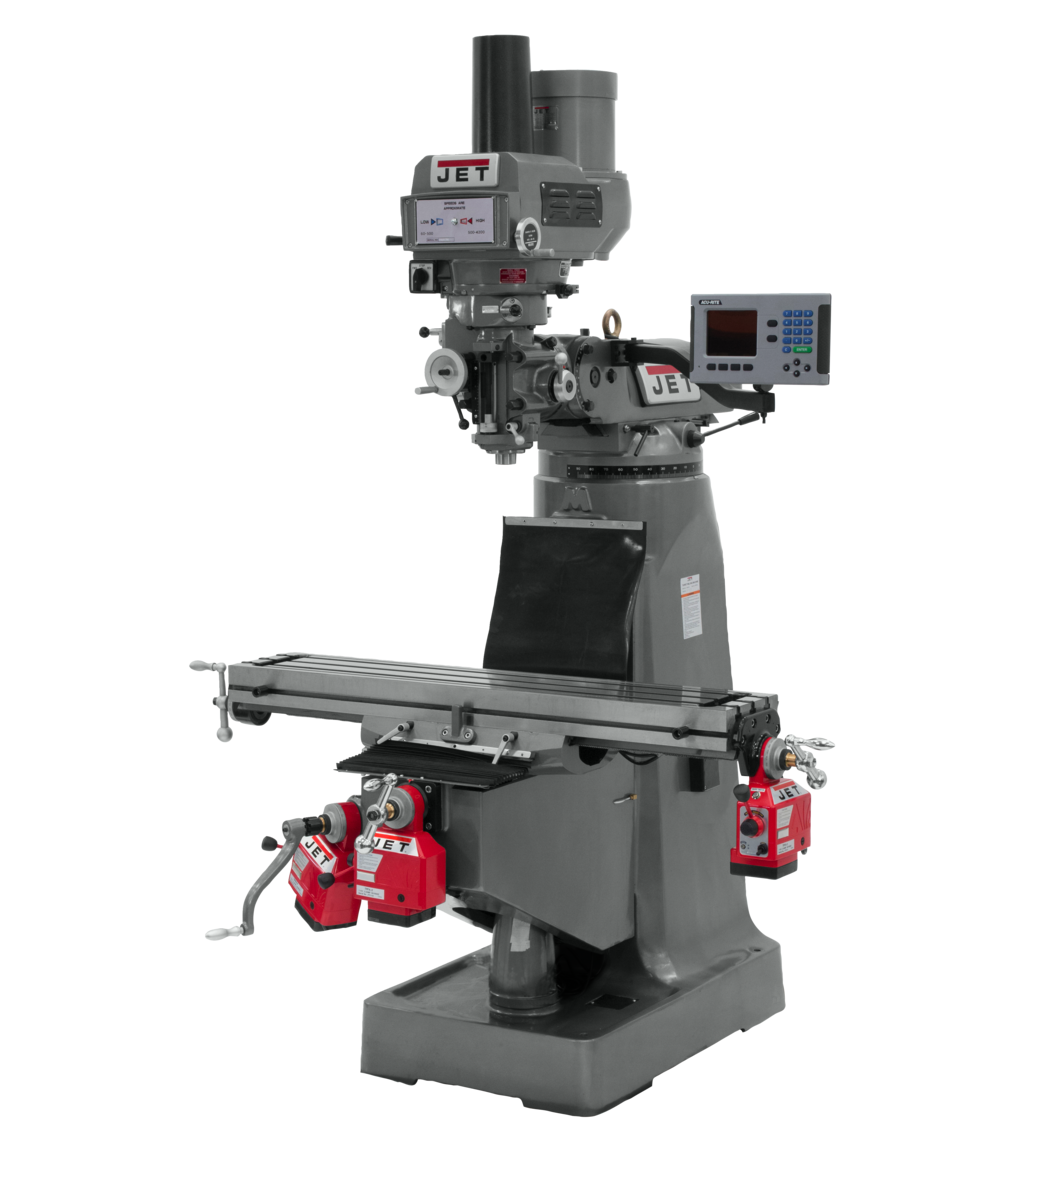 JTM-4VS Mill With 3-Axis ACU-RITE 203 DRO (Knee) With X, Y and Z-Axis Powerfeeds and Power Draw Bar